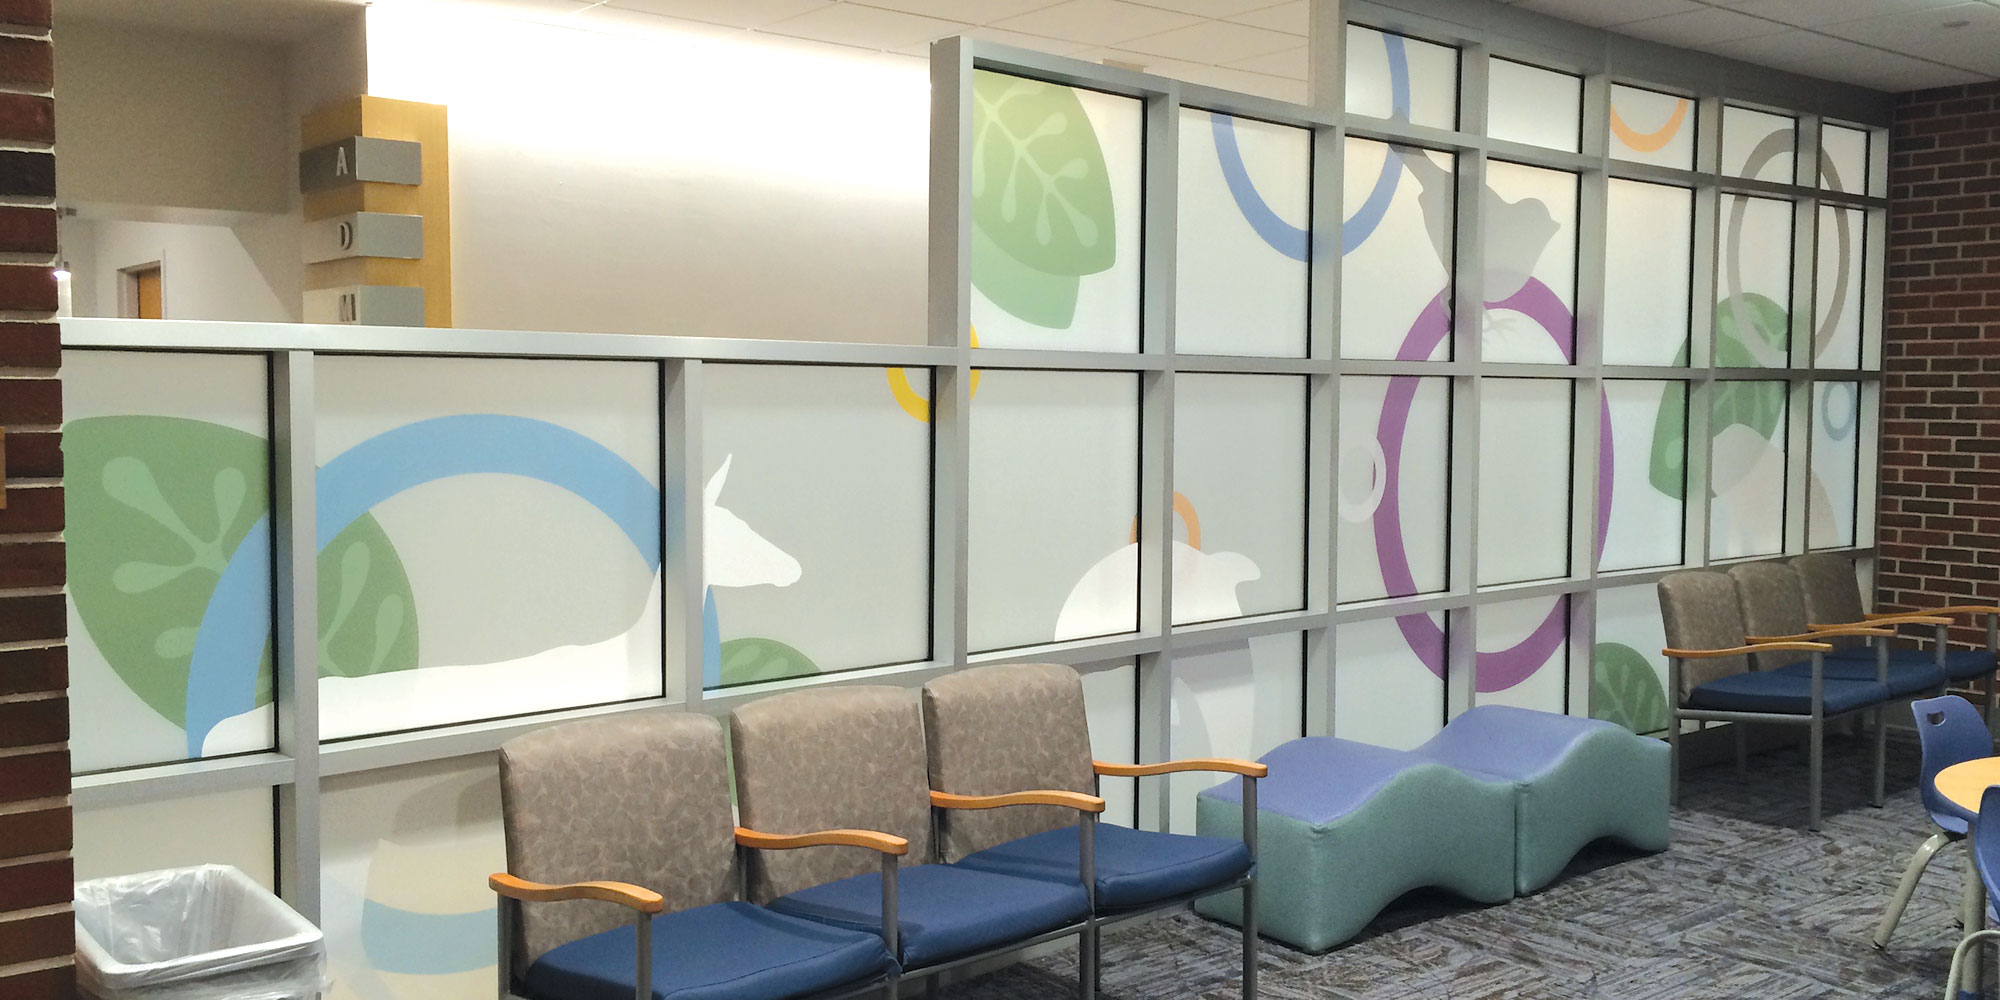 neutral7 design double layered window graphics